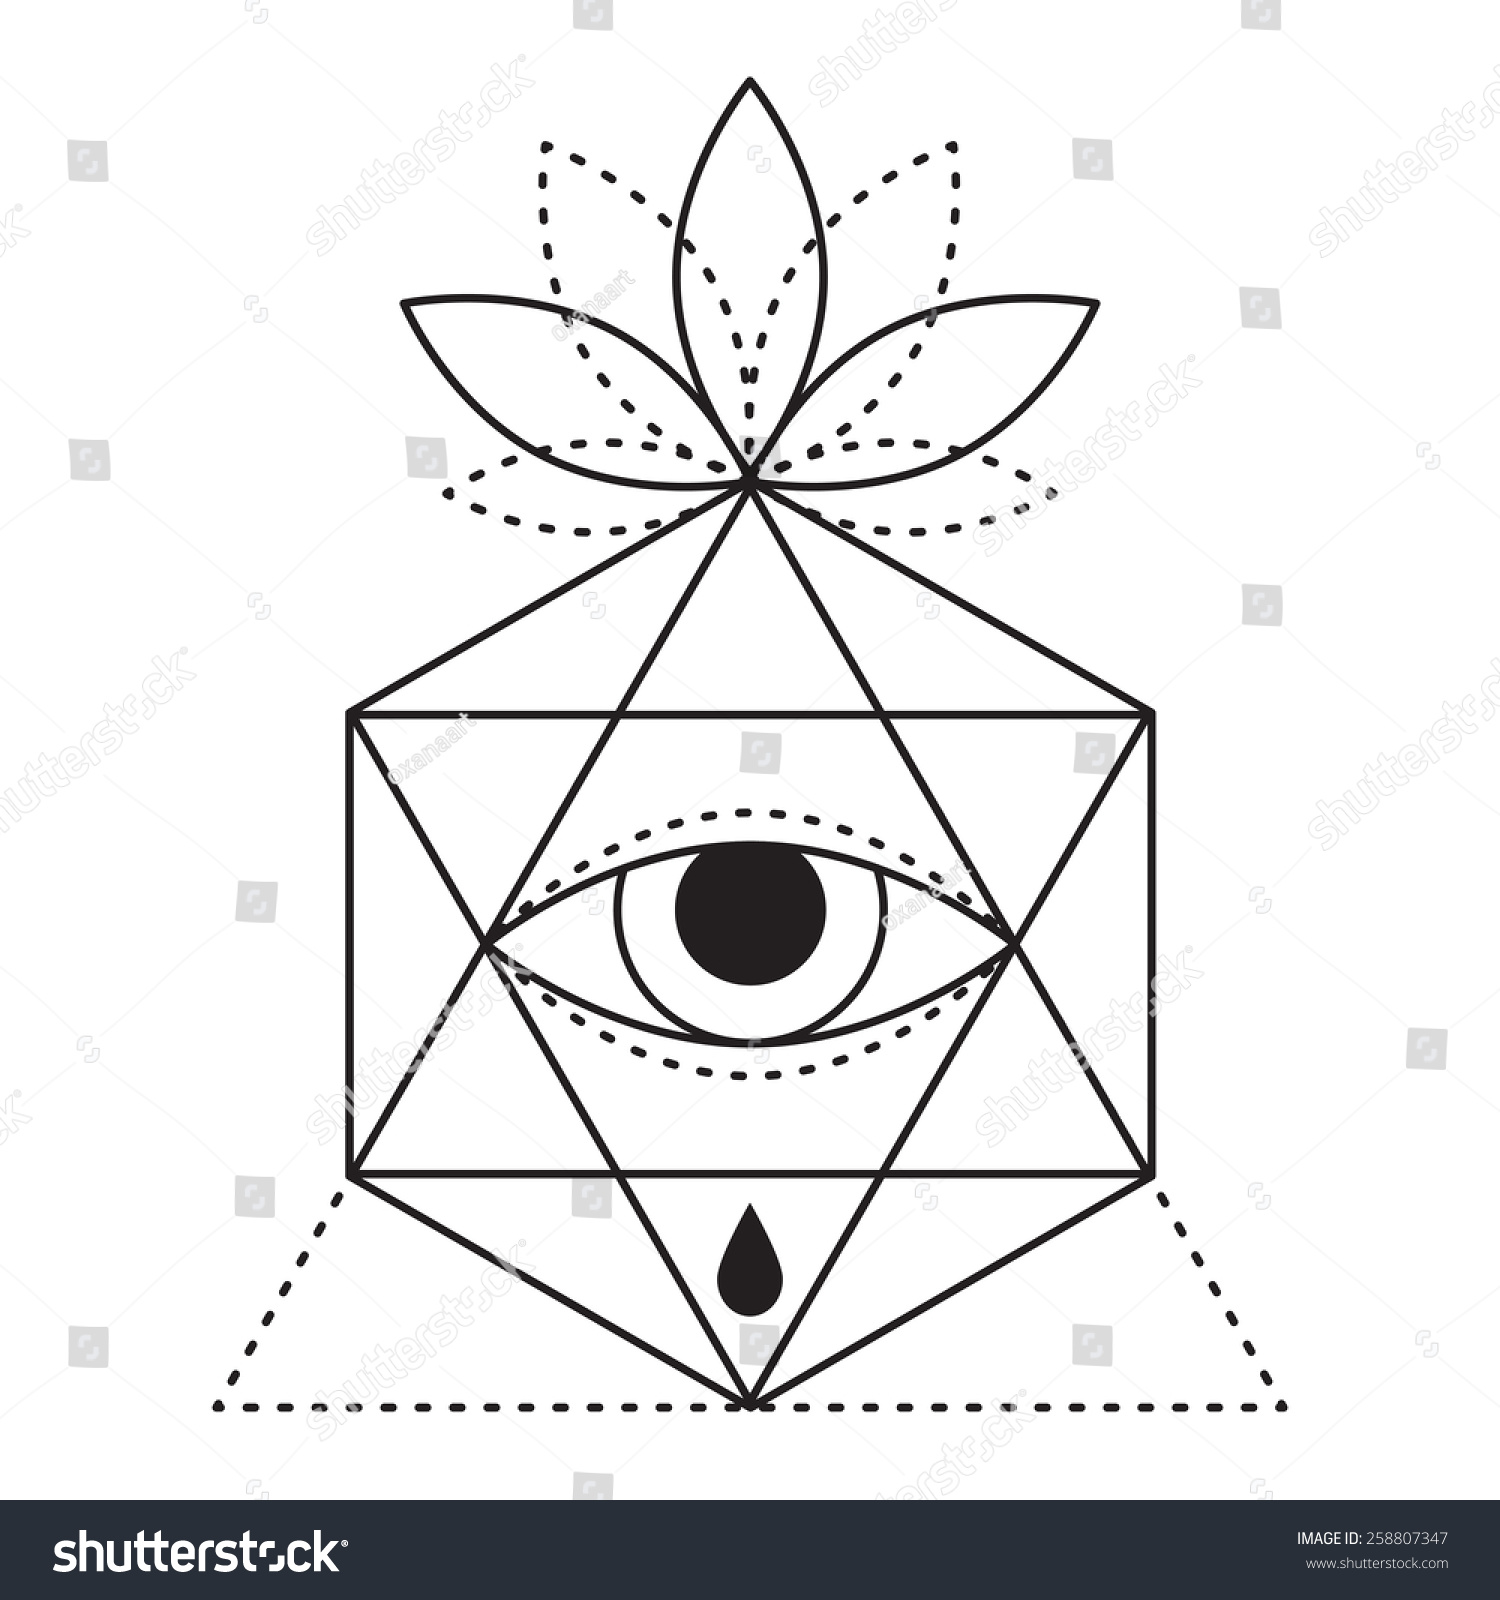 trendy style geometric tattoo design hipster stock vector (royalty